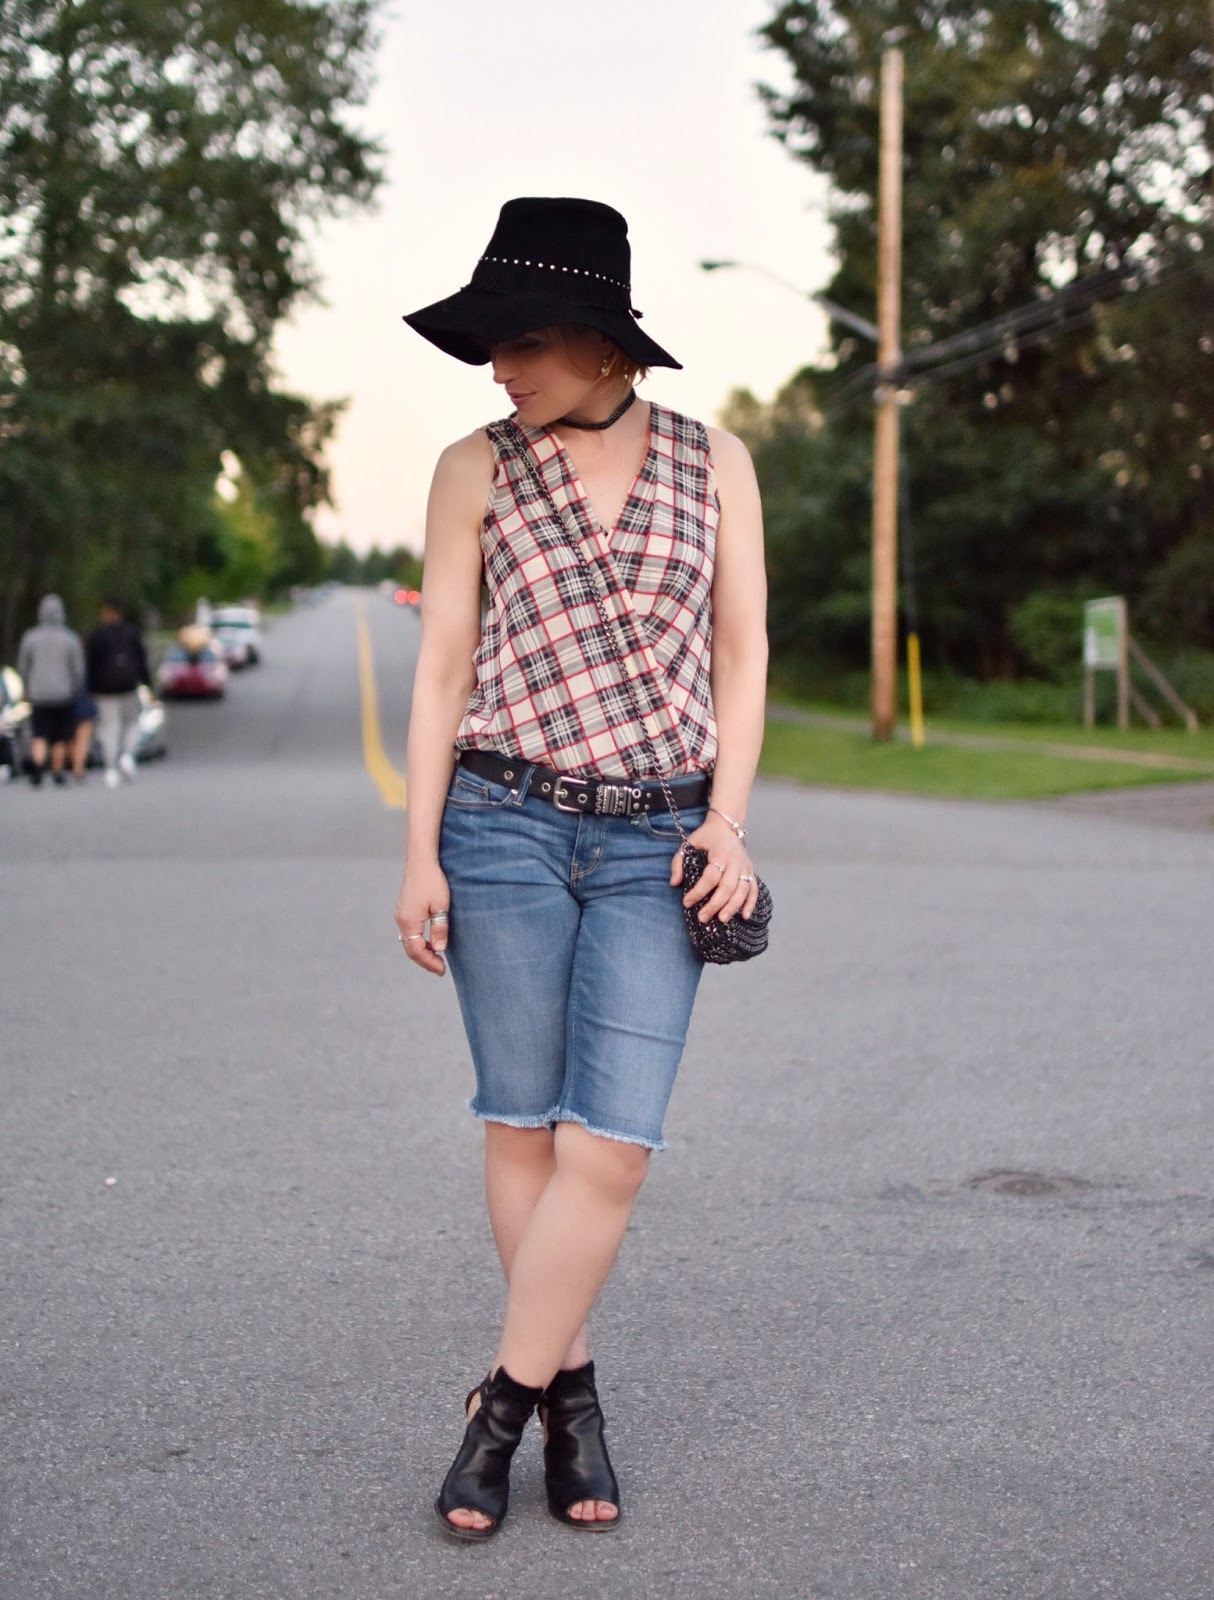 styling boyfriend shorts with a sleeveless plaid shirt, cut-out booties, and a floppy suede hat